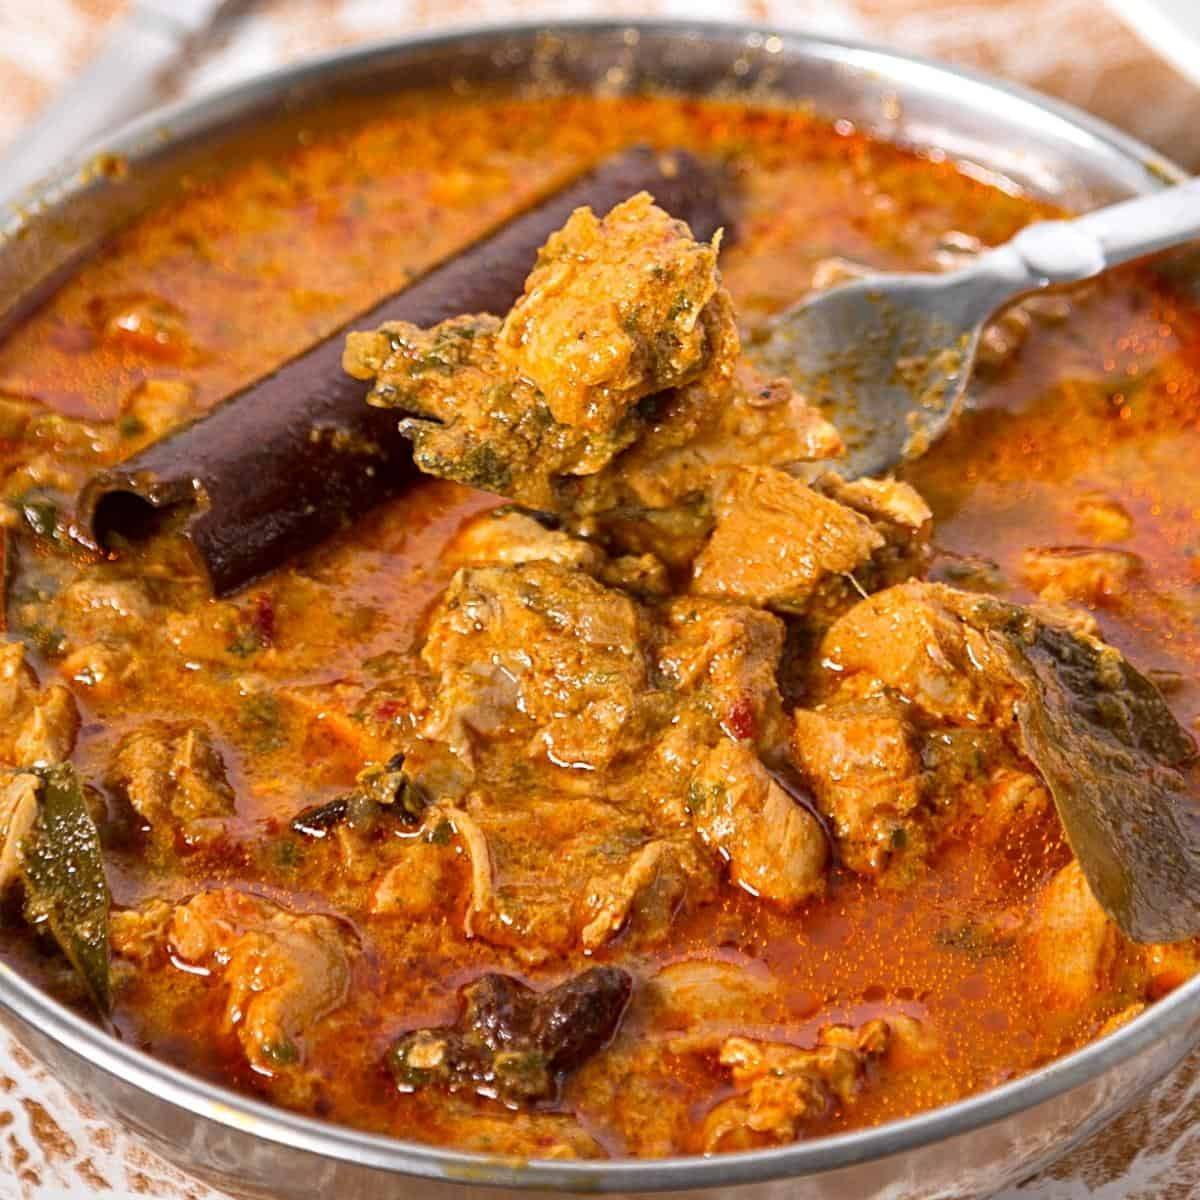 A skillet with chicken curry.